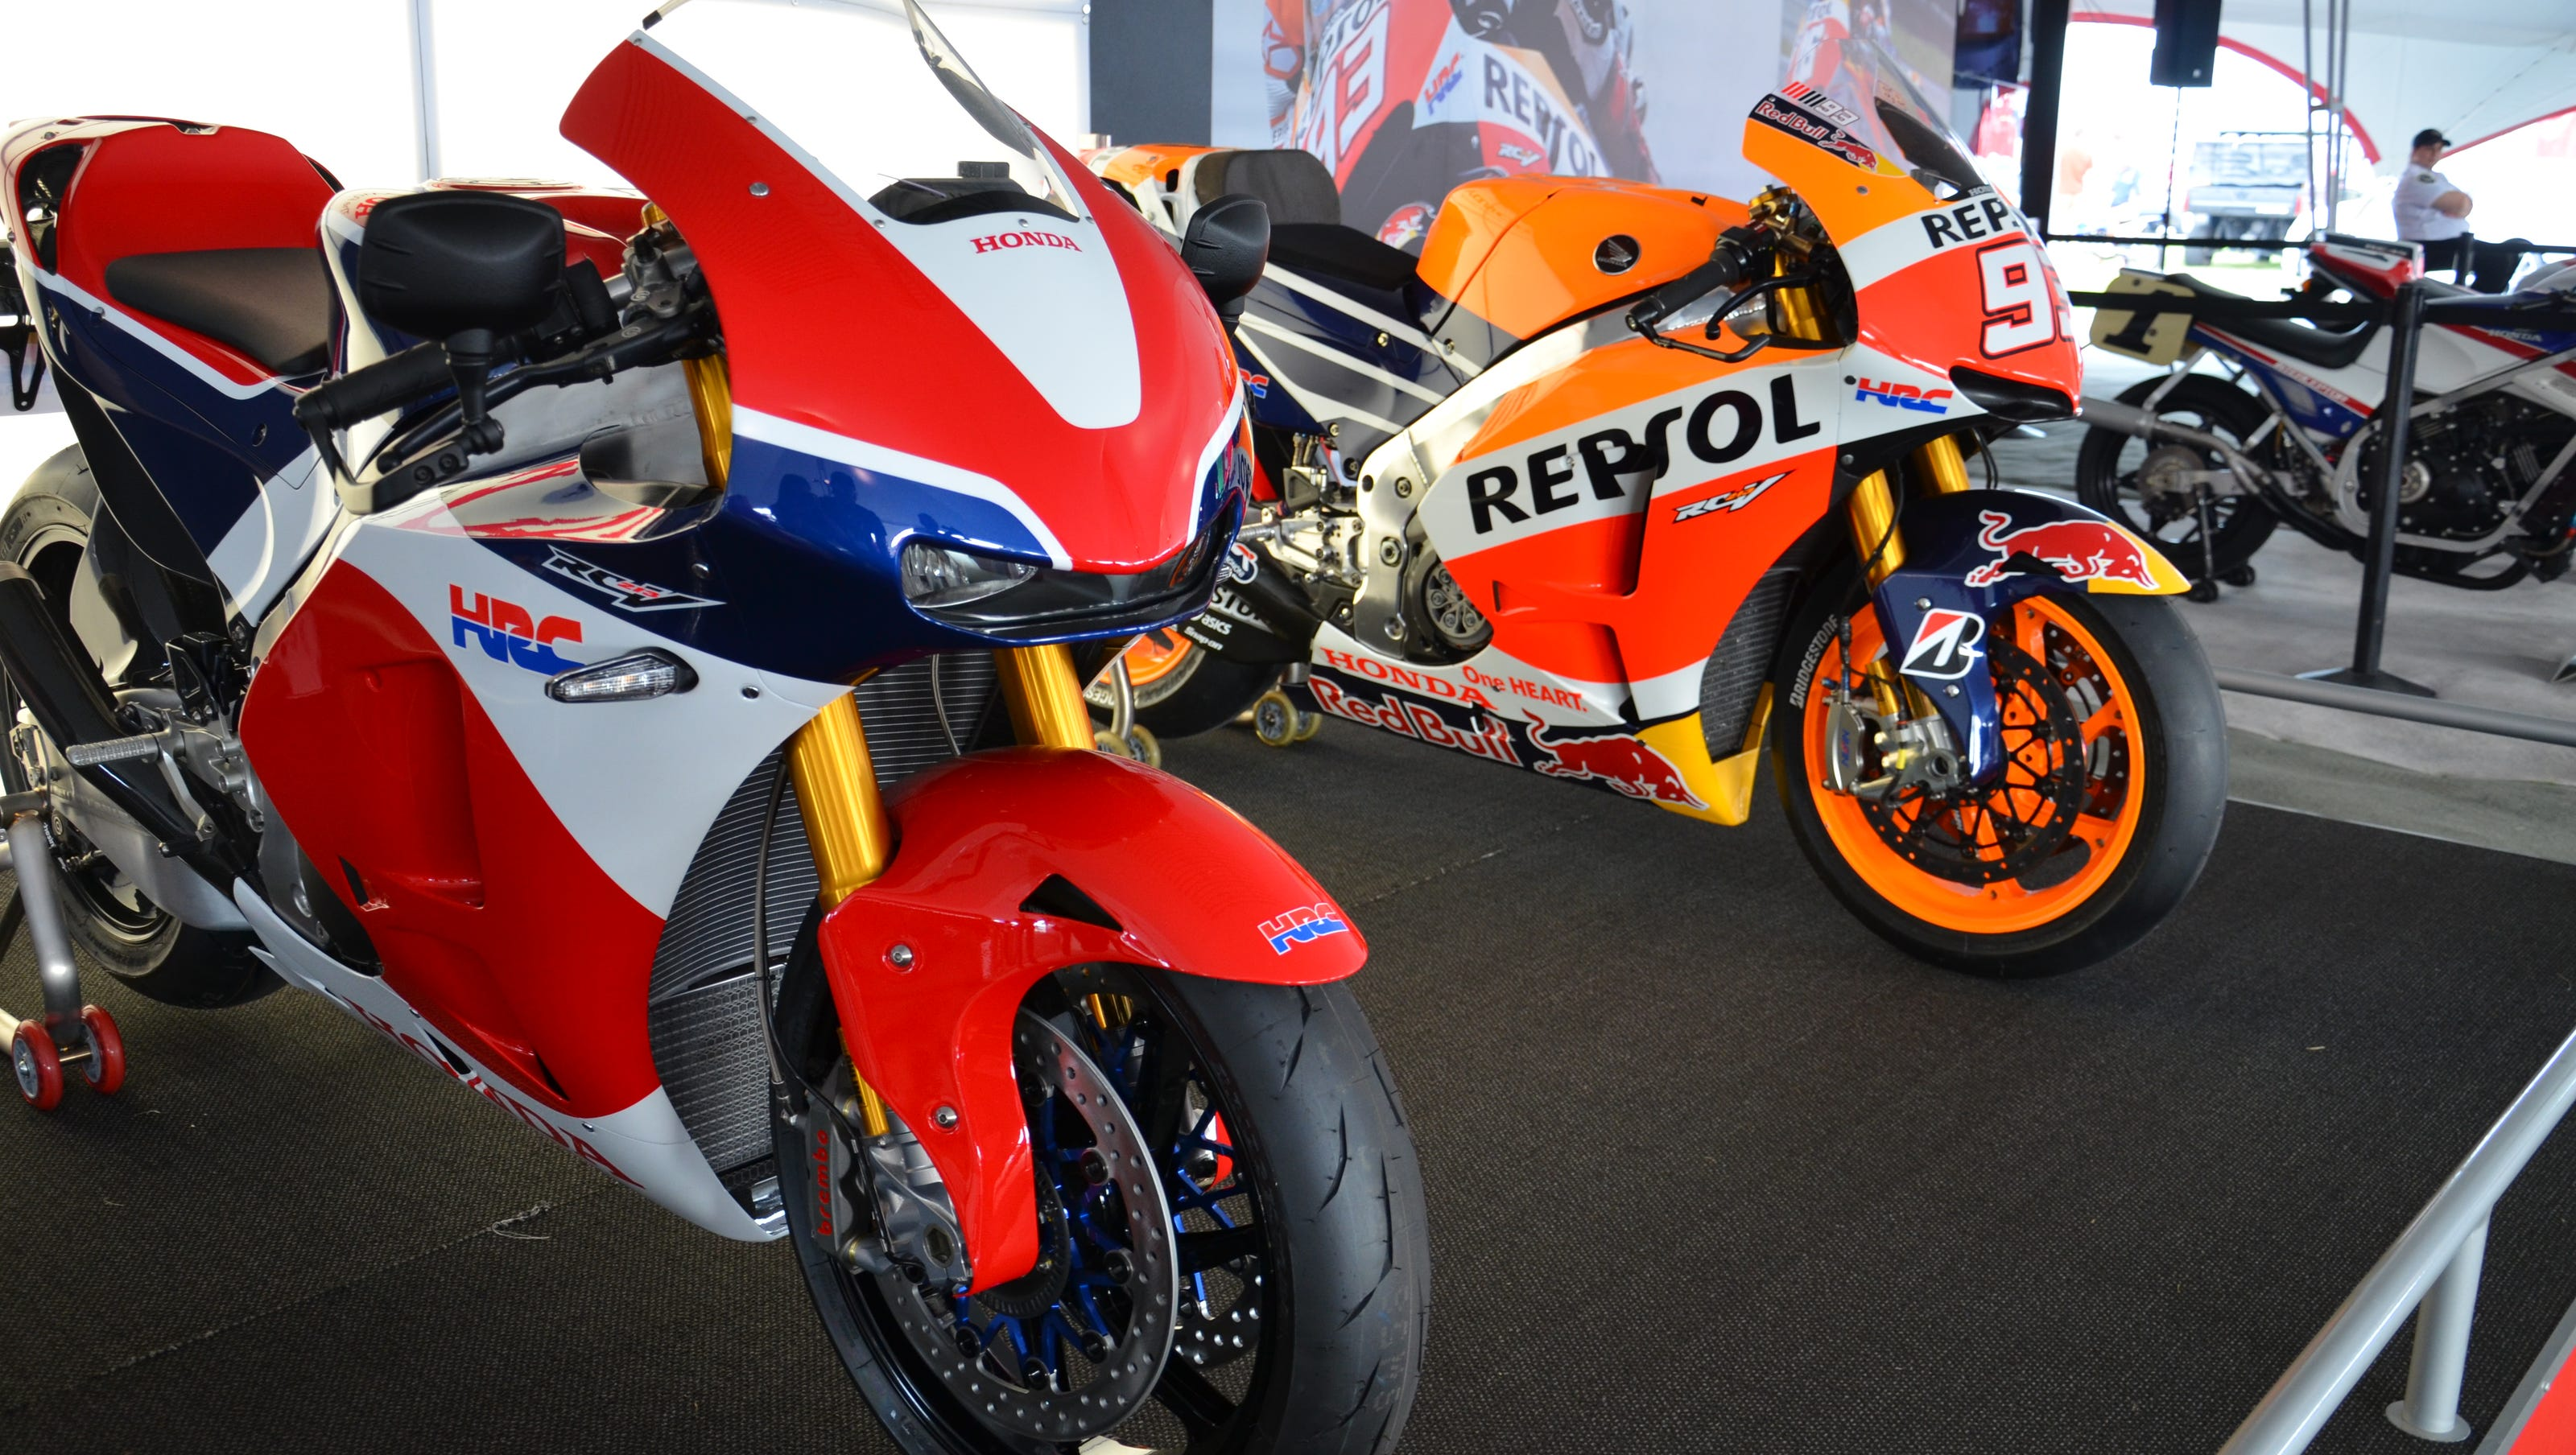 Why These Motogp Bikes Cost 2 Million